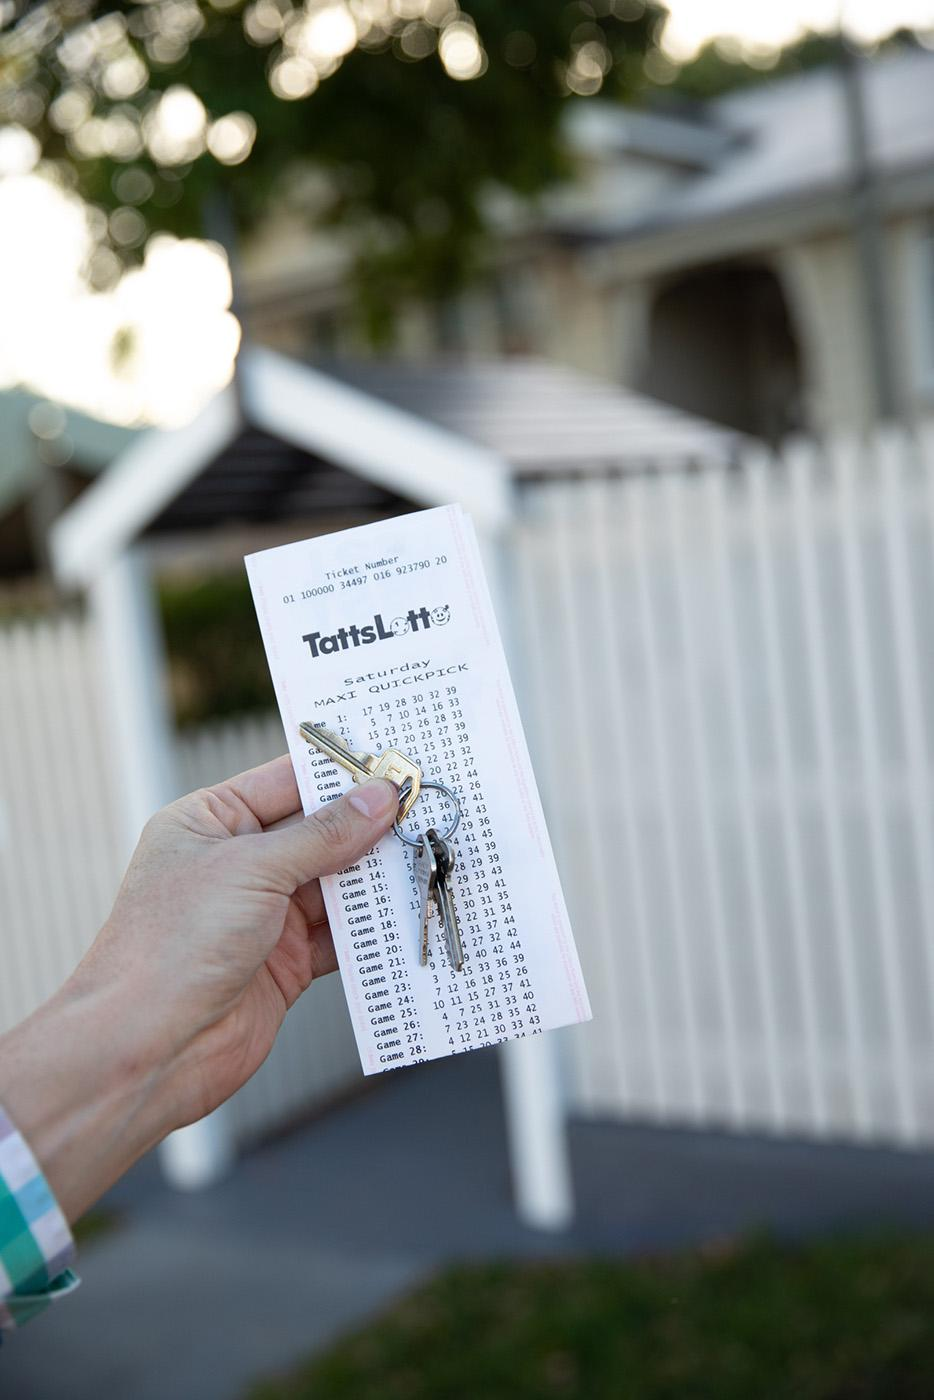 A hand holds a set of house keys and a TattsLotto ticket in front of a white picket fence.